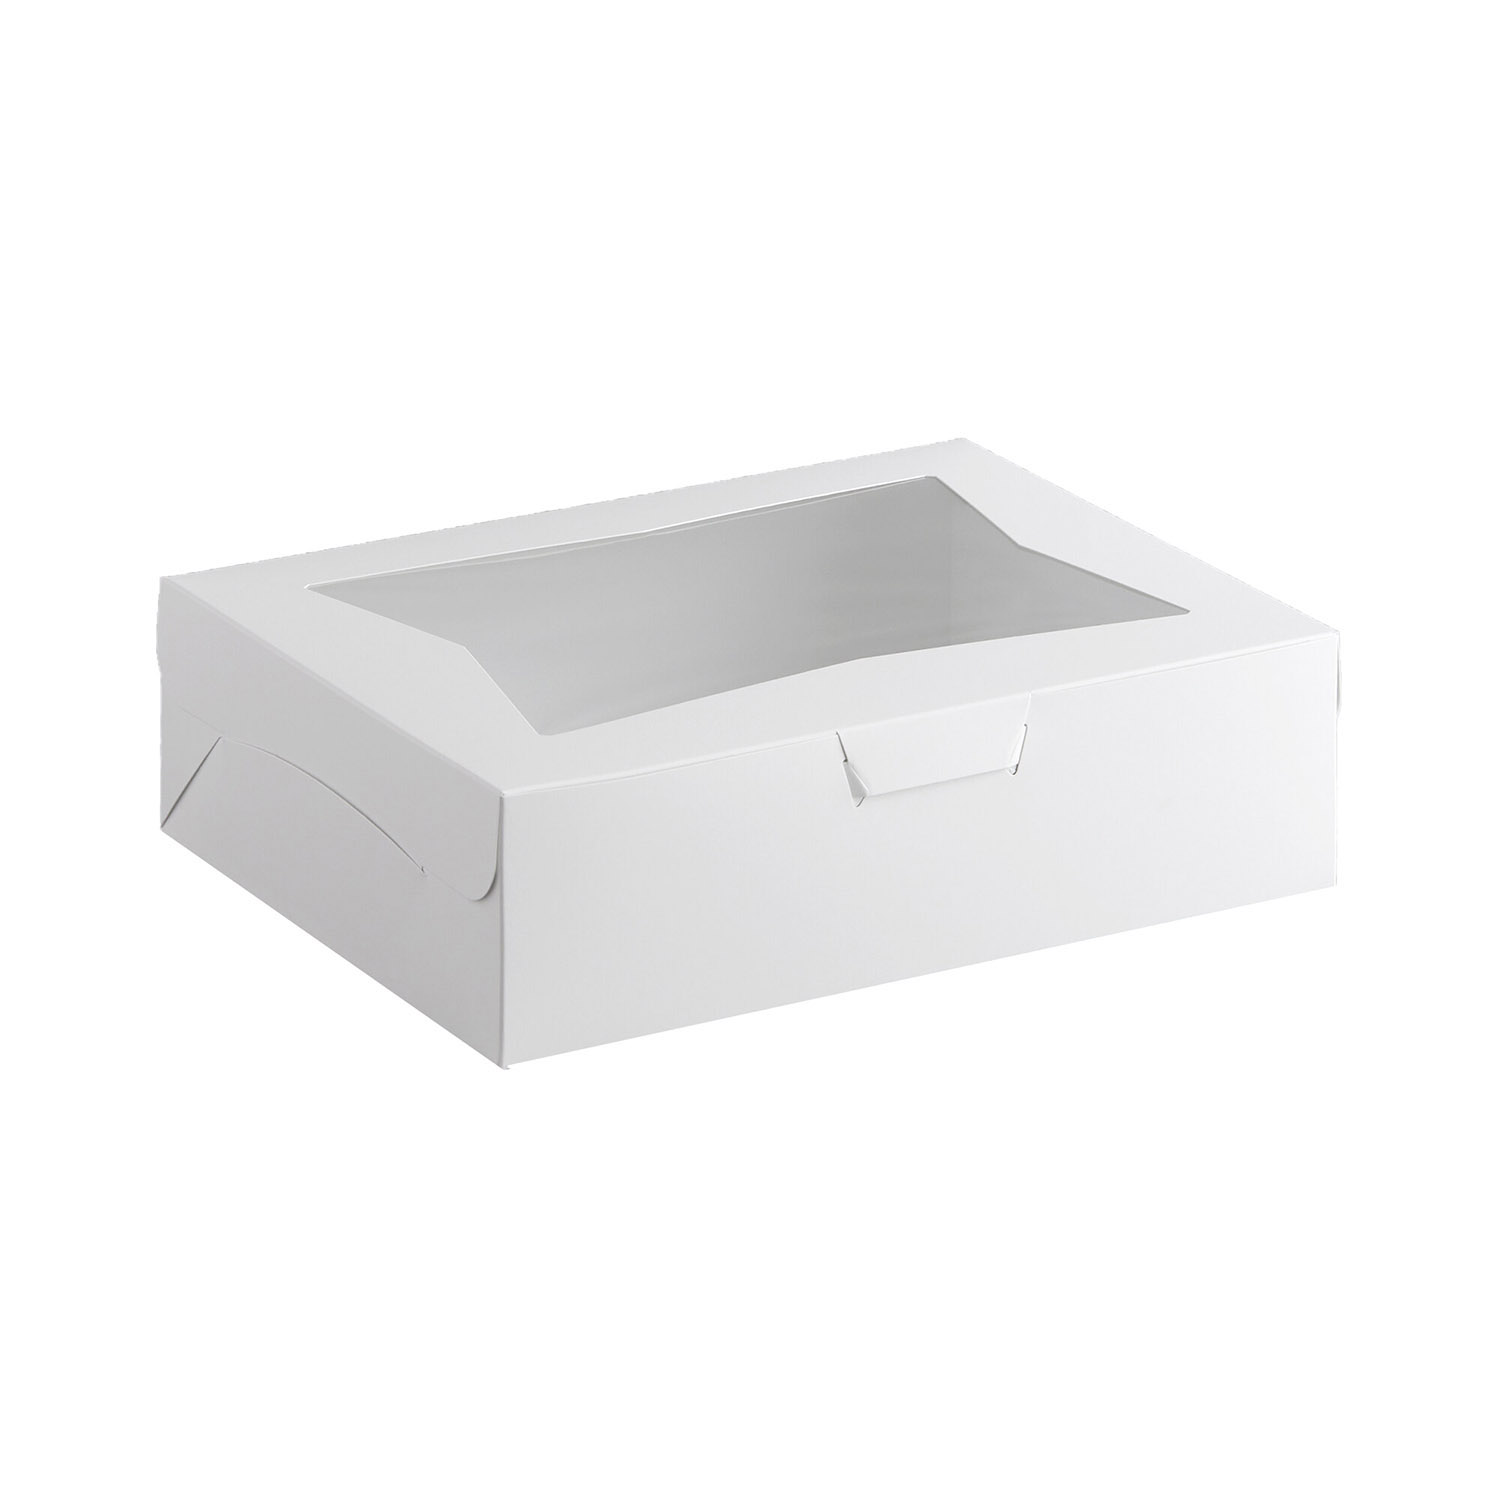 "19"" x 14"" x 4"" Half Sheet Cake Boxes With Window"